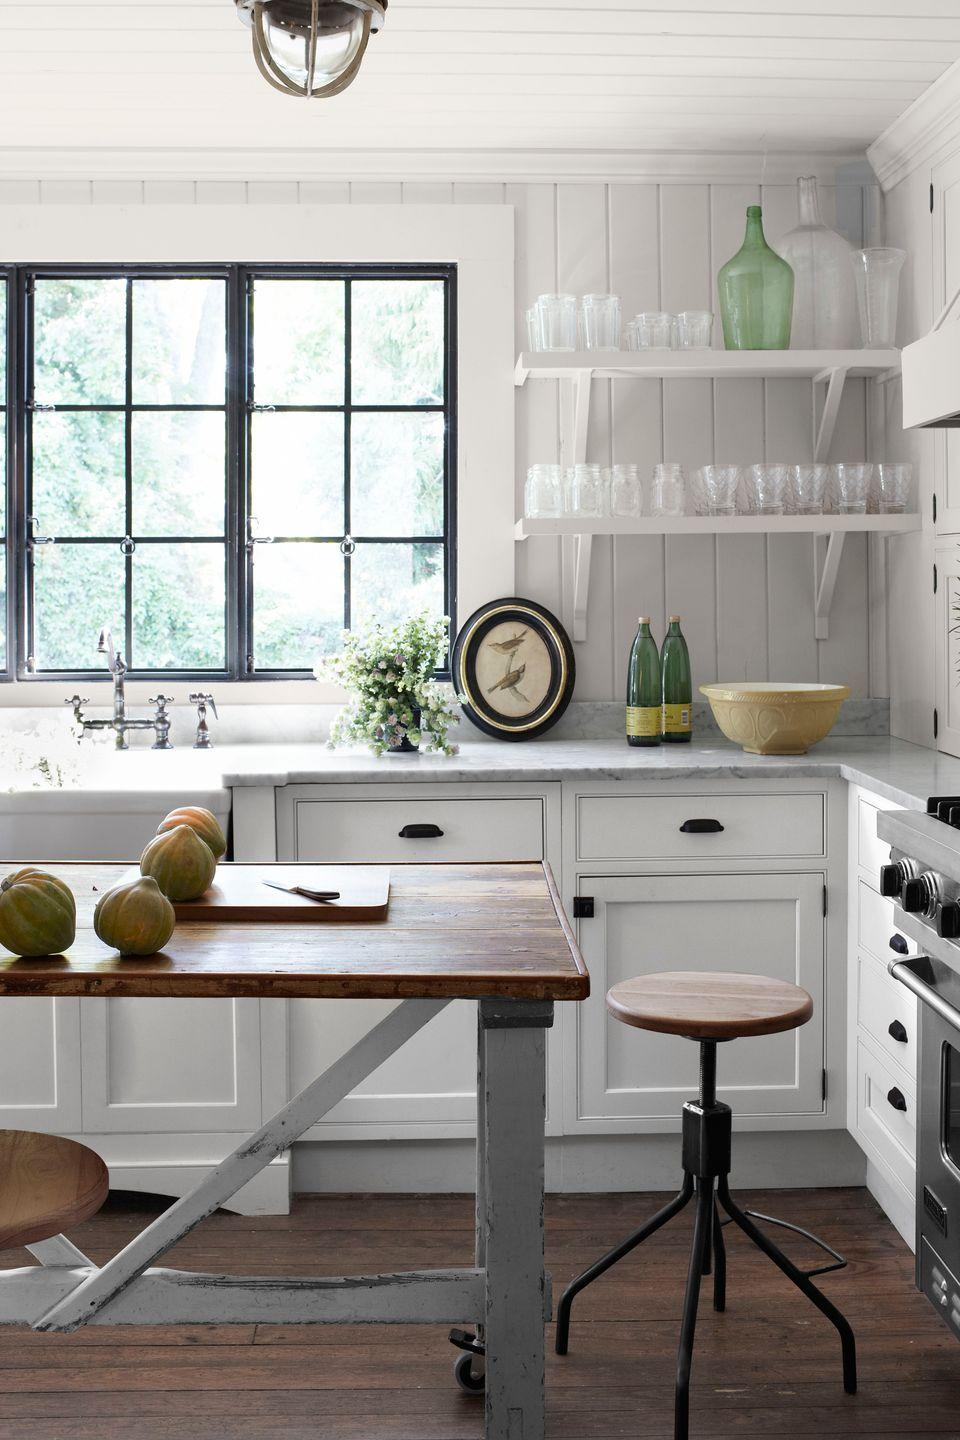 """<p>This antebellum <a href=""""https://www.countryliving.com/home-design/house-tours/g1364/southern-decorating-ideas/"""" rel=""""nofollow noopener"""" target=""""_blank"""" data-ylk=""""slk:Georgia house"""" class=""""link rapid-noclick-resp"""">Georgia house</a> features a late-1800s Belgian butcher's table, now a kitchen island, that still bears traces of newsprint from the table's hardworking industrial days. The homeowners left the Carrara marble counters un-honed to show wear. The walls are painted Country Stove White by Ralph Lauren.</p>"""